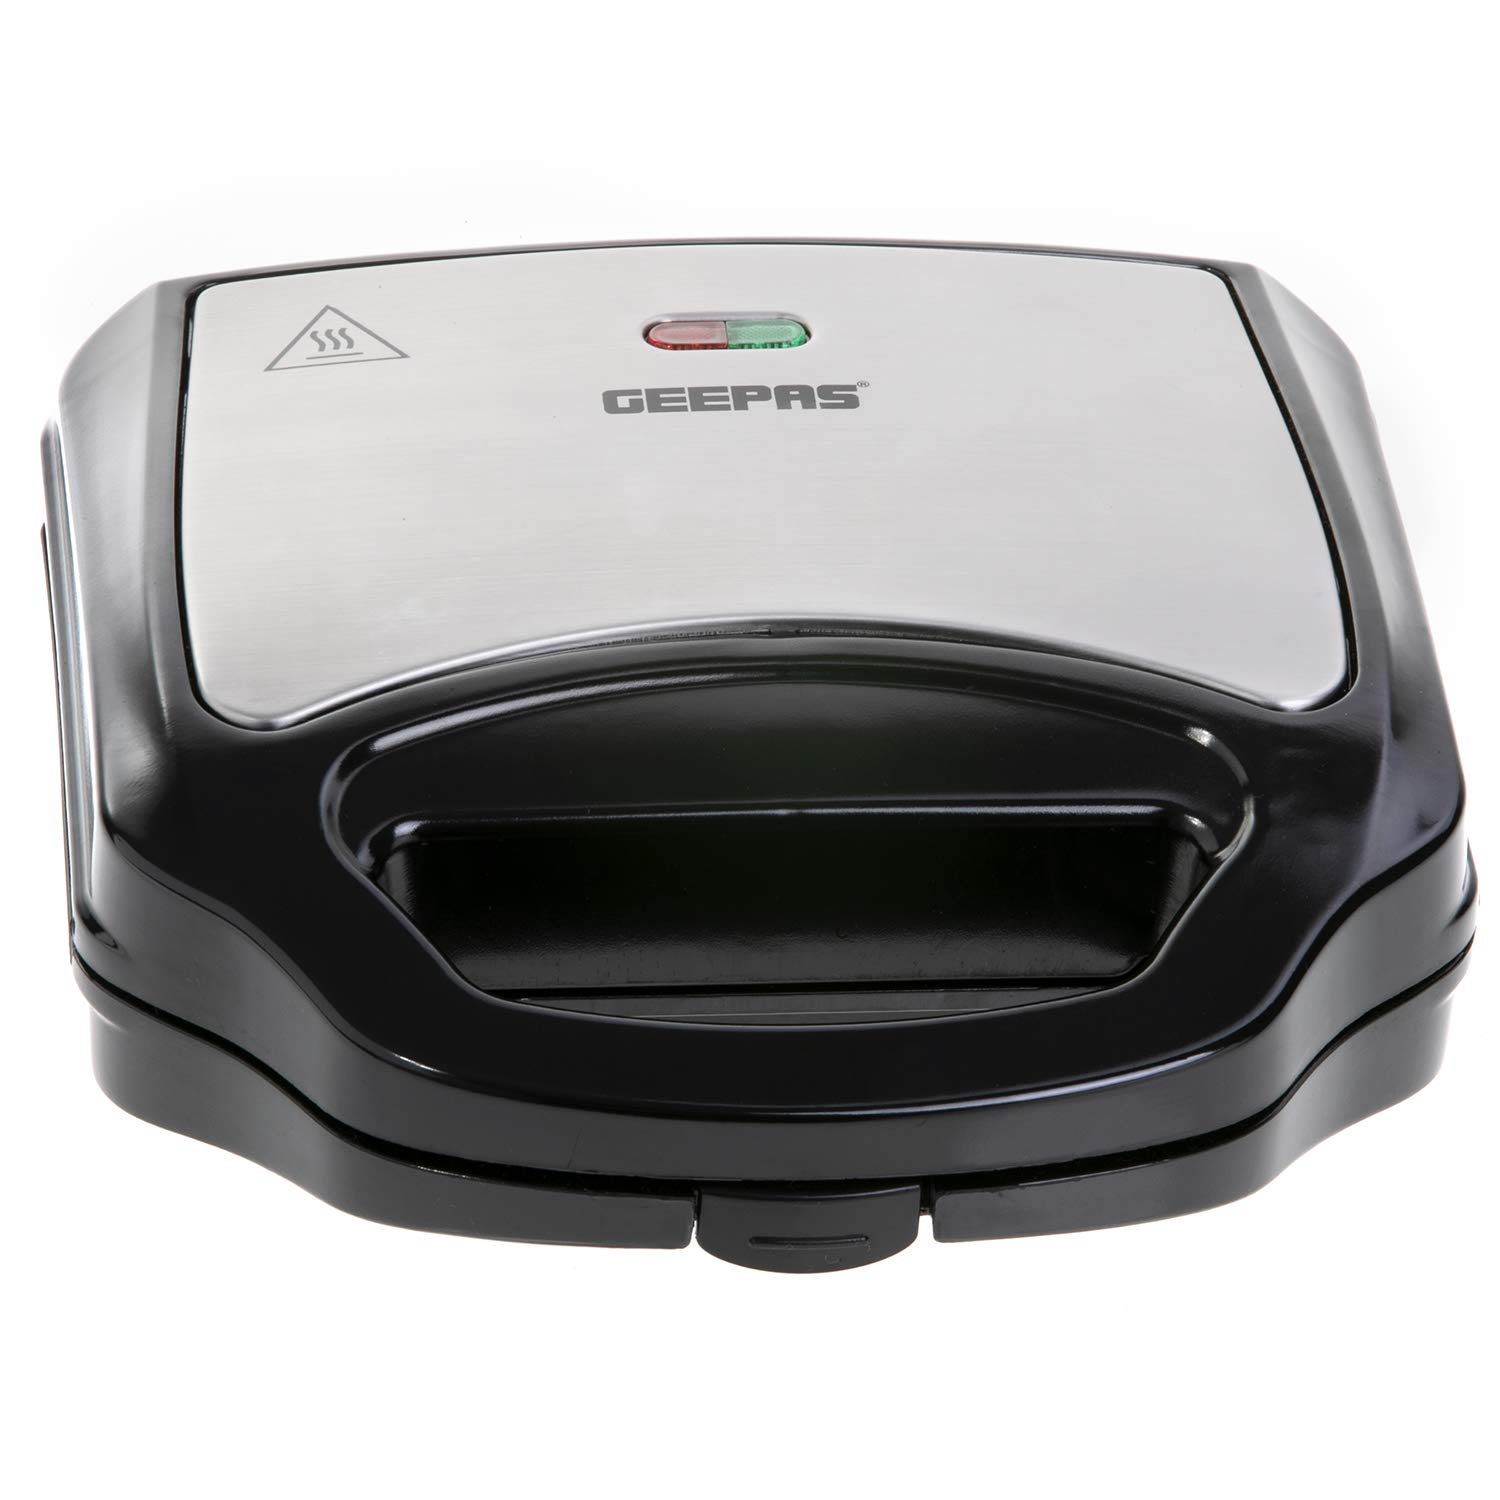 Geepas 2 Slice Sandwich Maker for Cooking Delicious Crispy Sandwiches, with Cool Touch Handle, Automatic Temperature Control and Non-Stick Plate